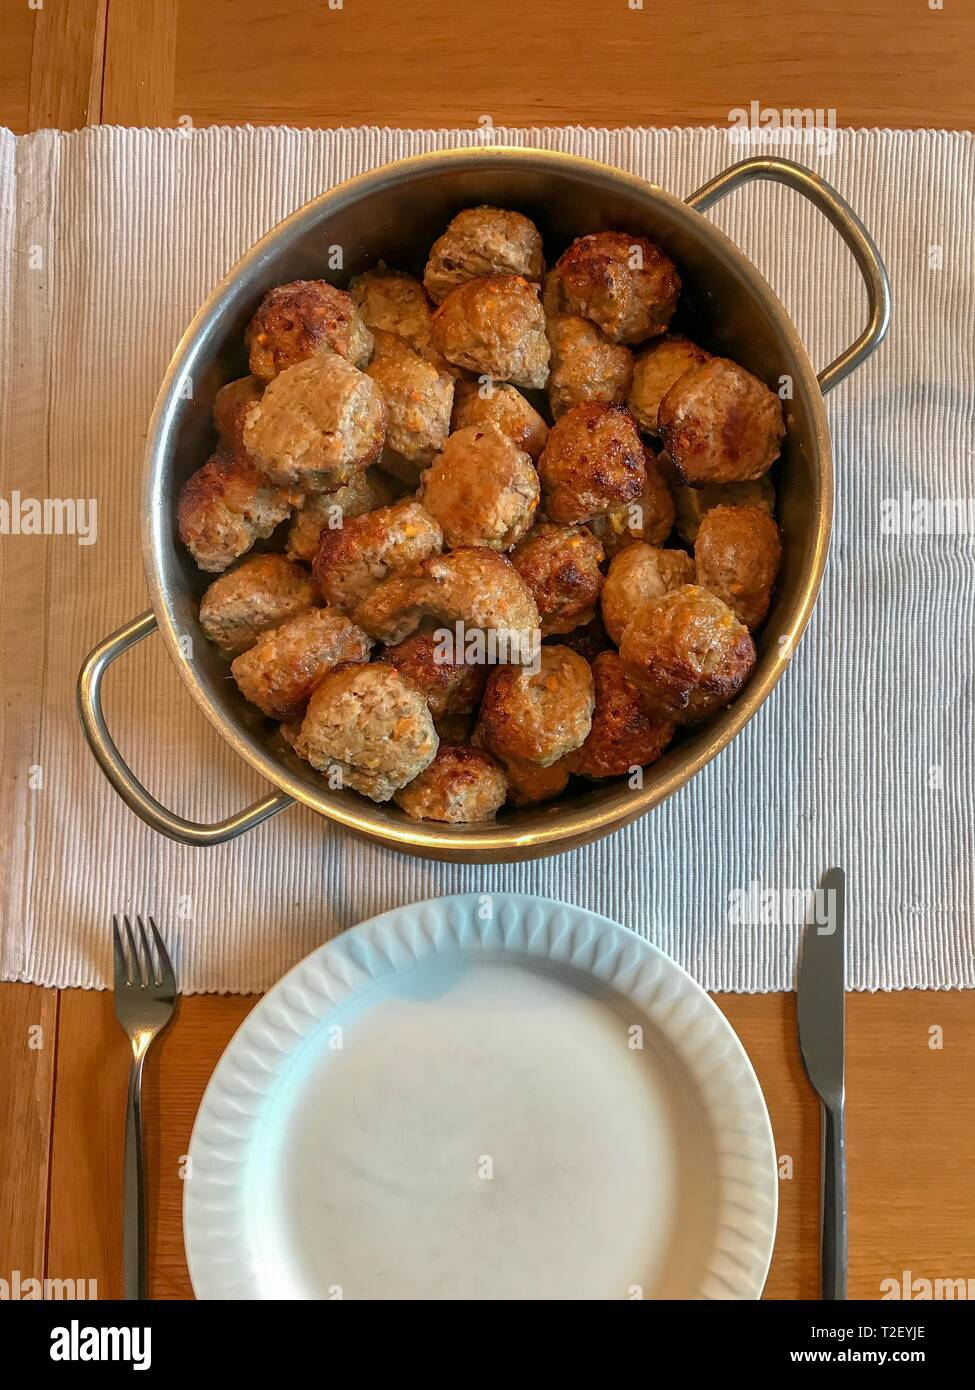 Meatballs, home cooking, laid table, Germany - Stock Image